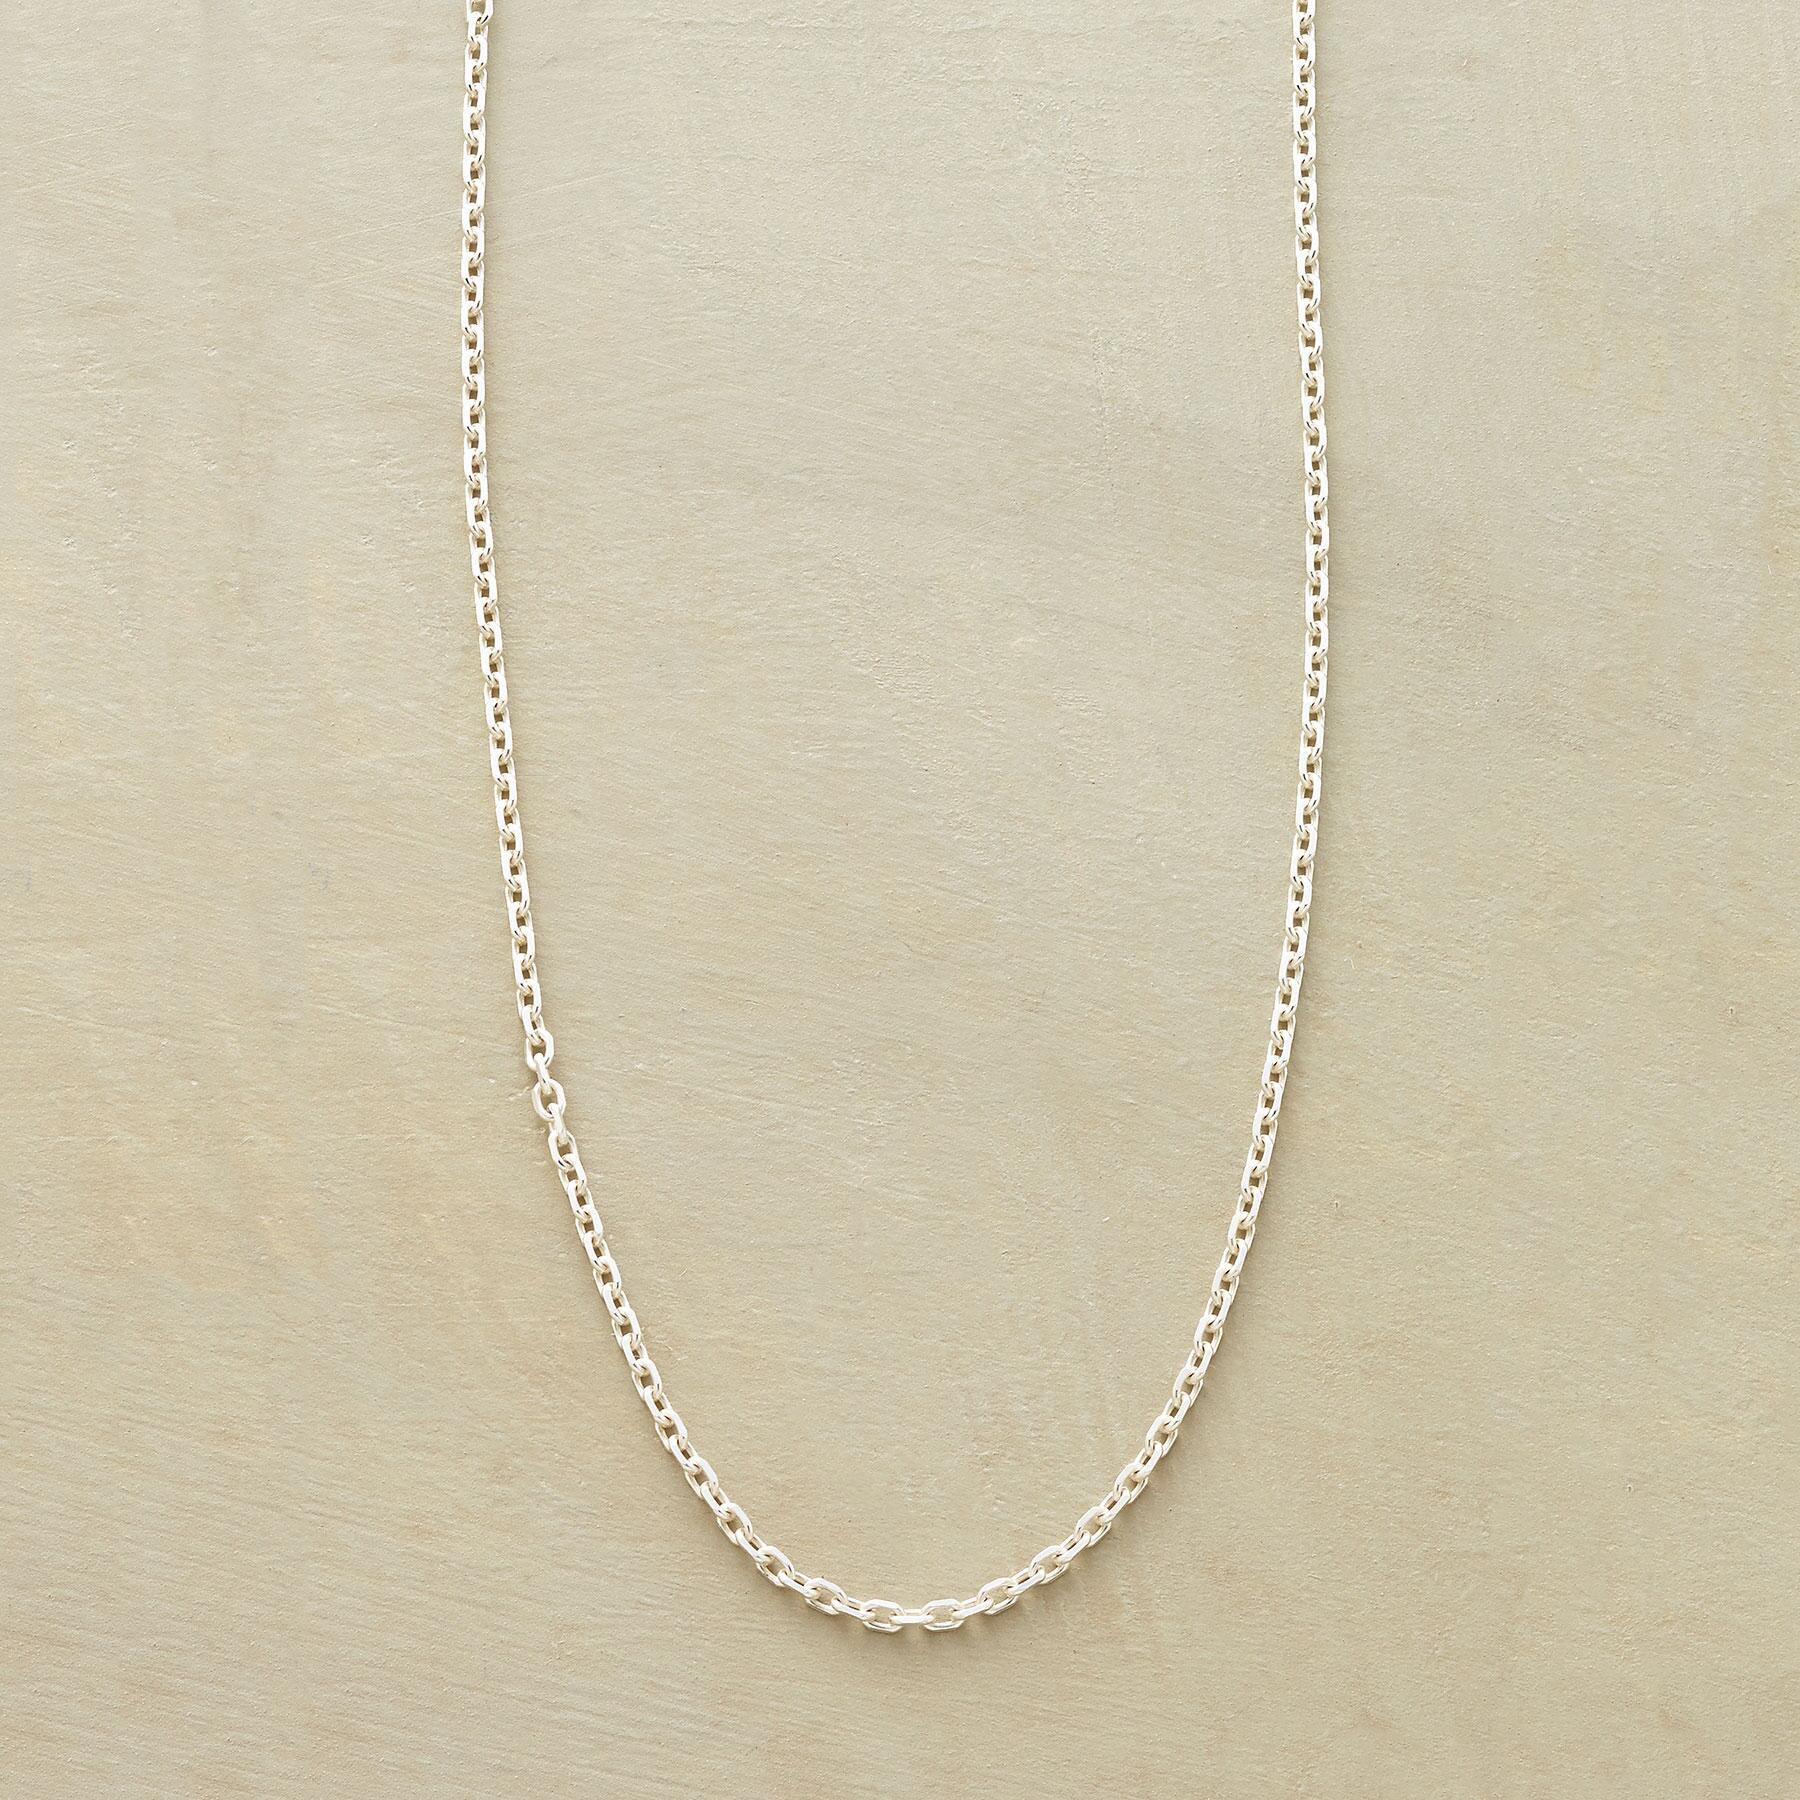 STERLING CHAIN NECKLACE: View 1